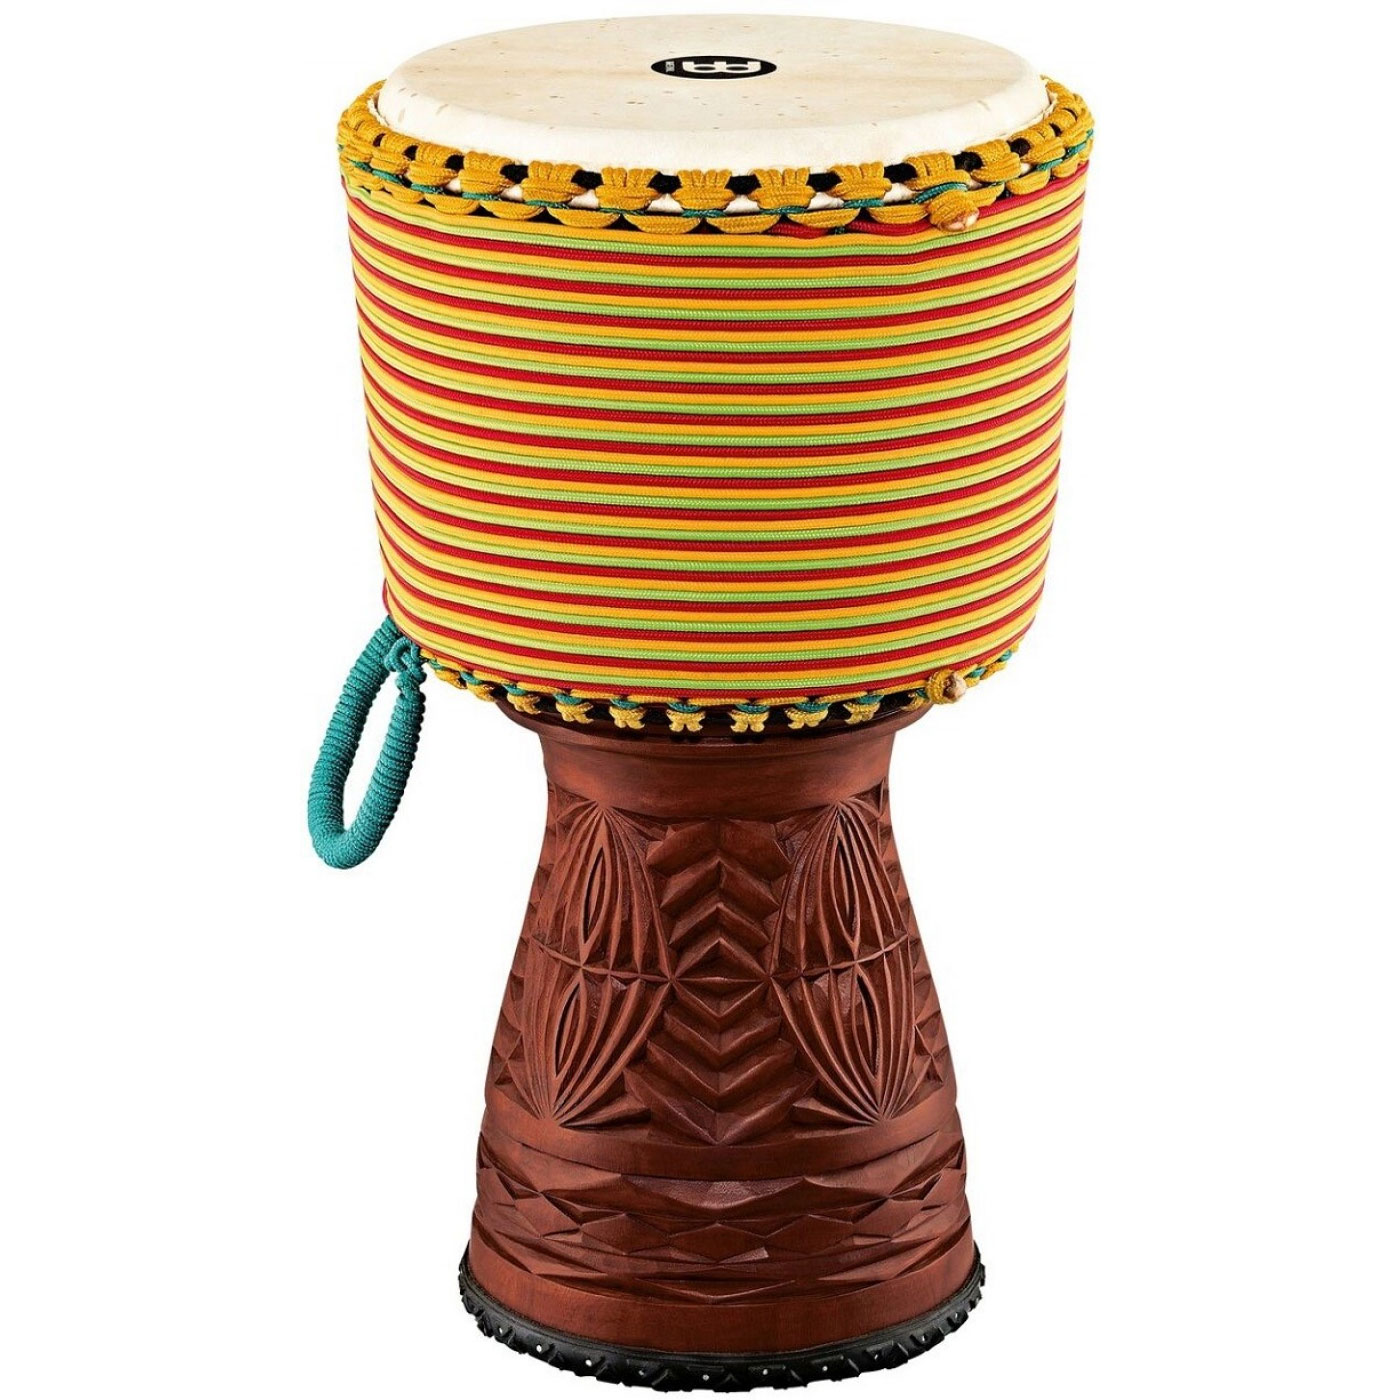 "Meinl 12"" Artisan Edition Djembe with Colored Rope Wrapping"